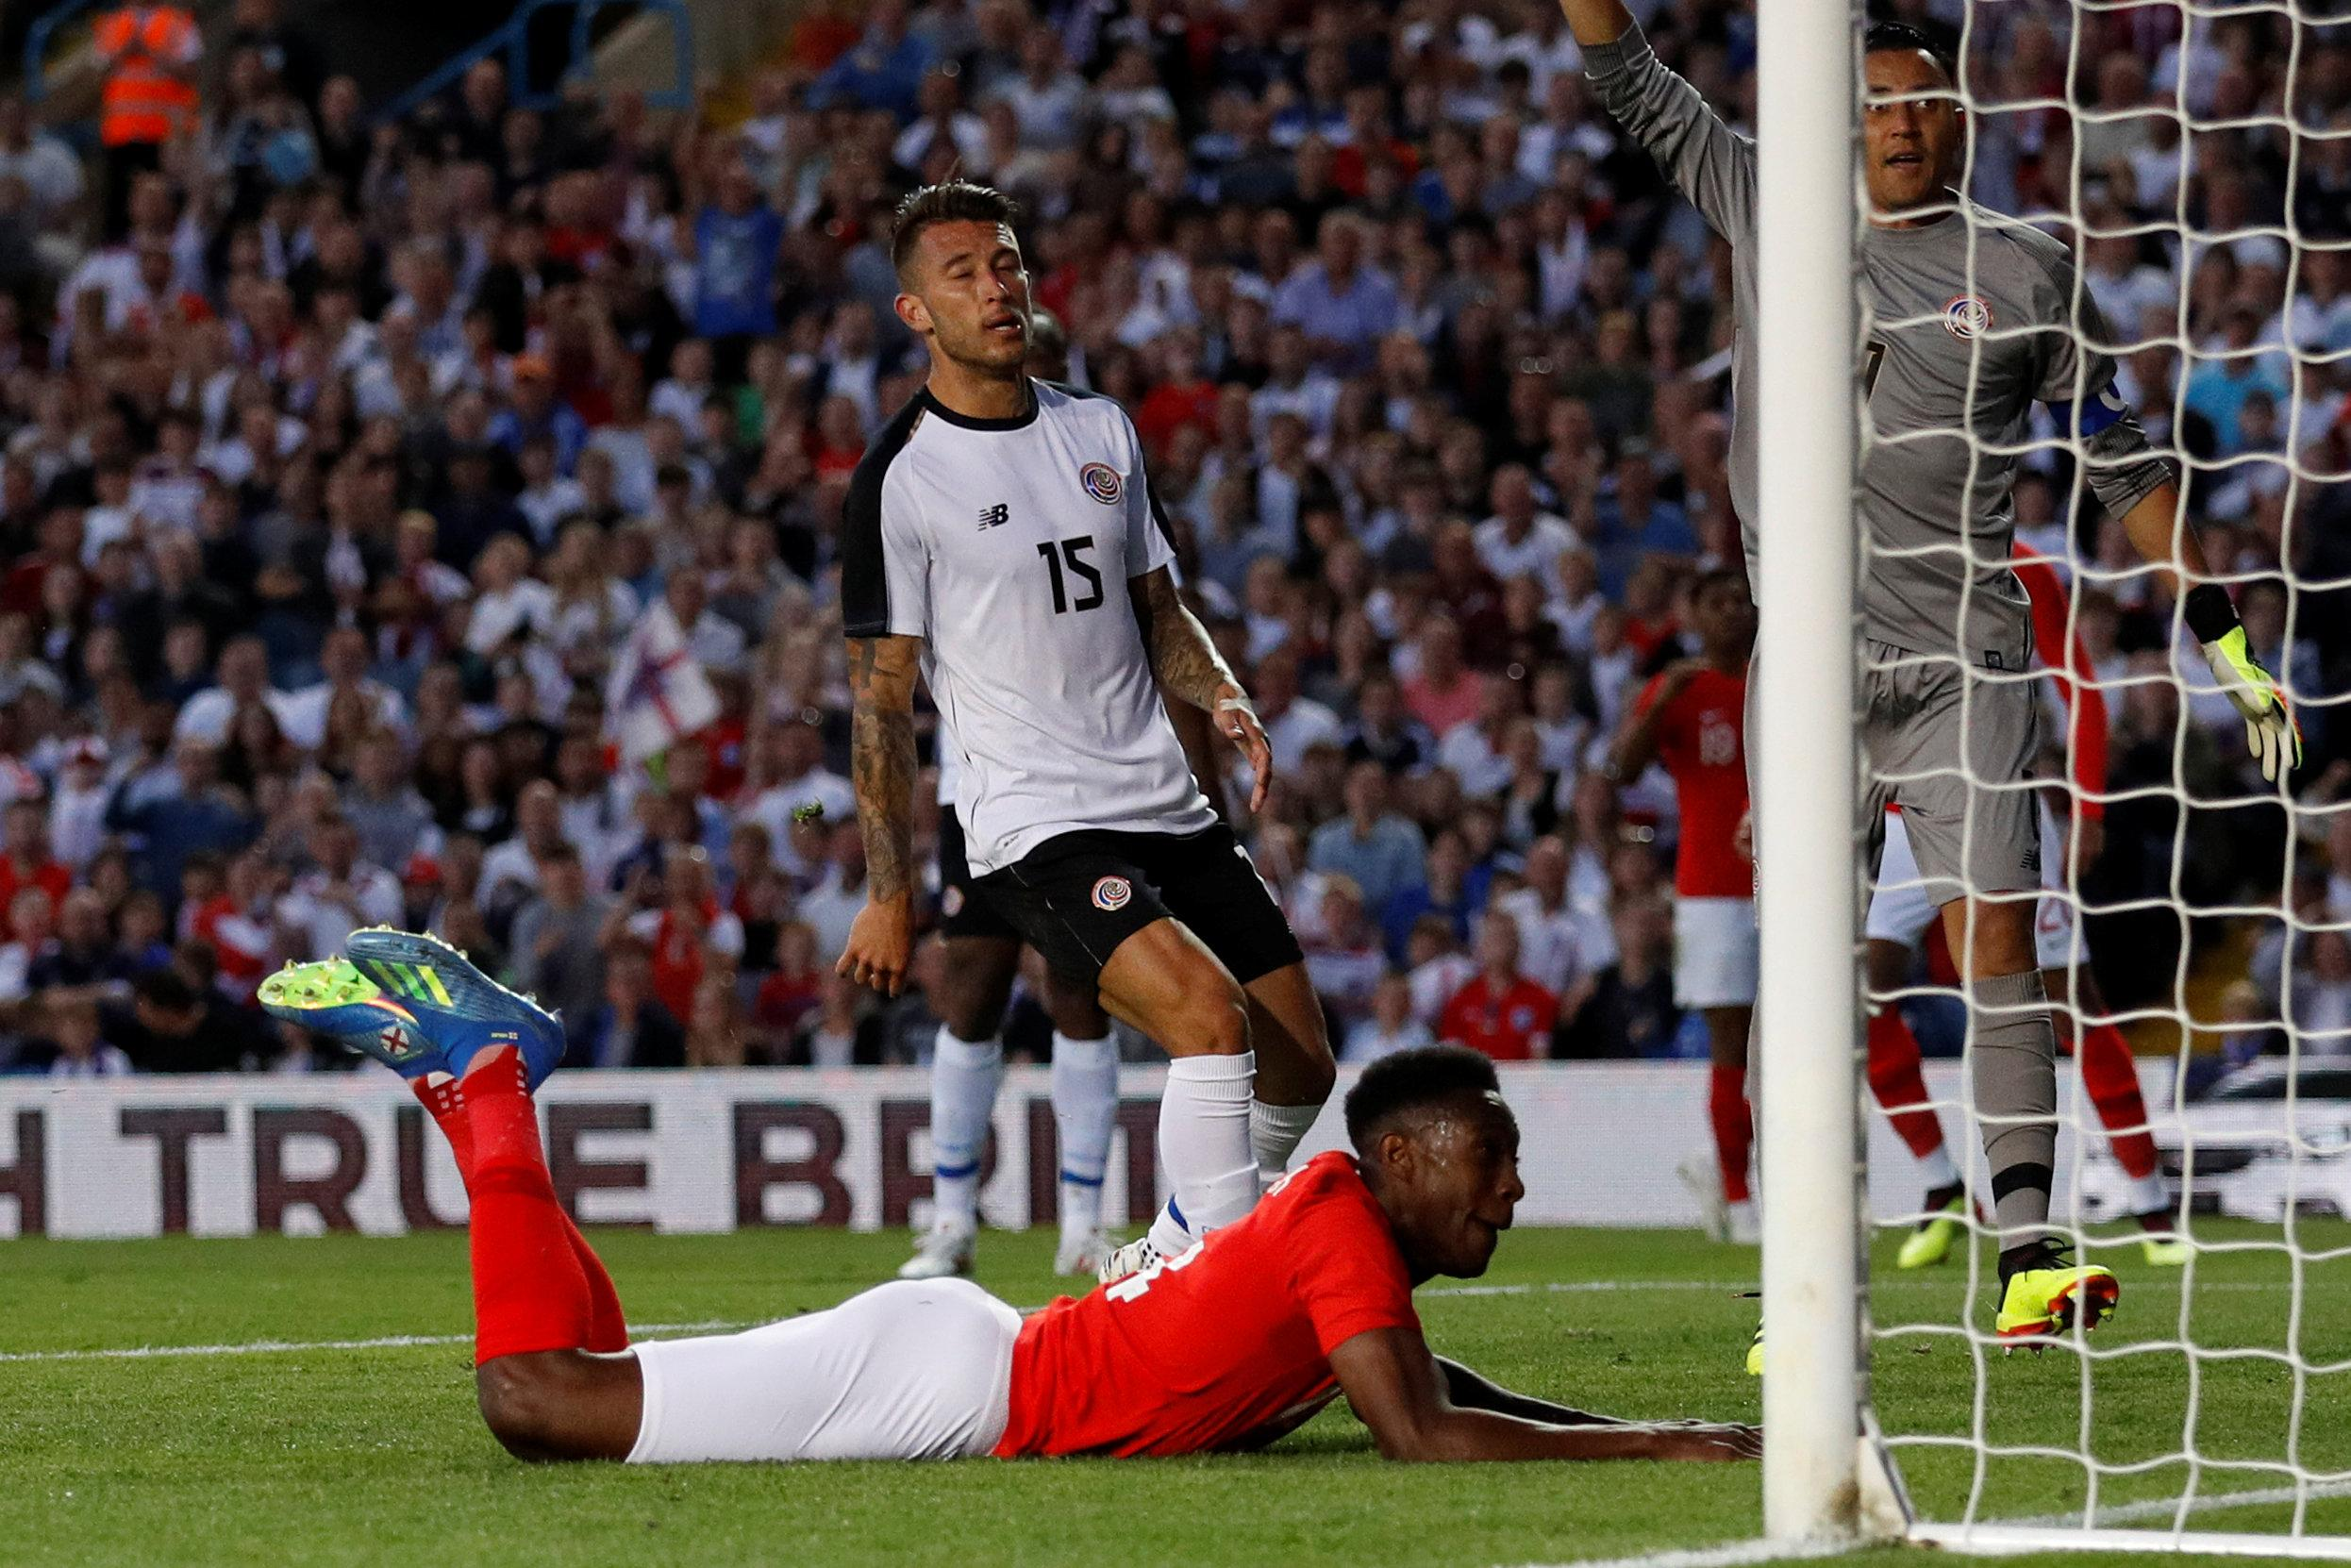 Danny Welbeck came off the bench to score a diving header as England sealed a comfortable win over Costa Rica